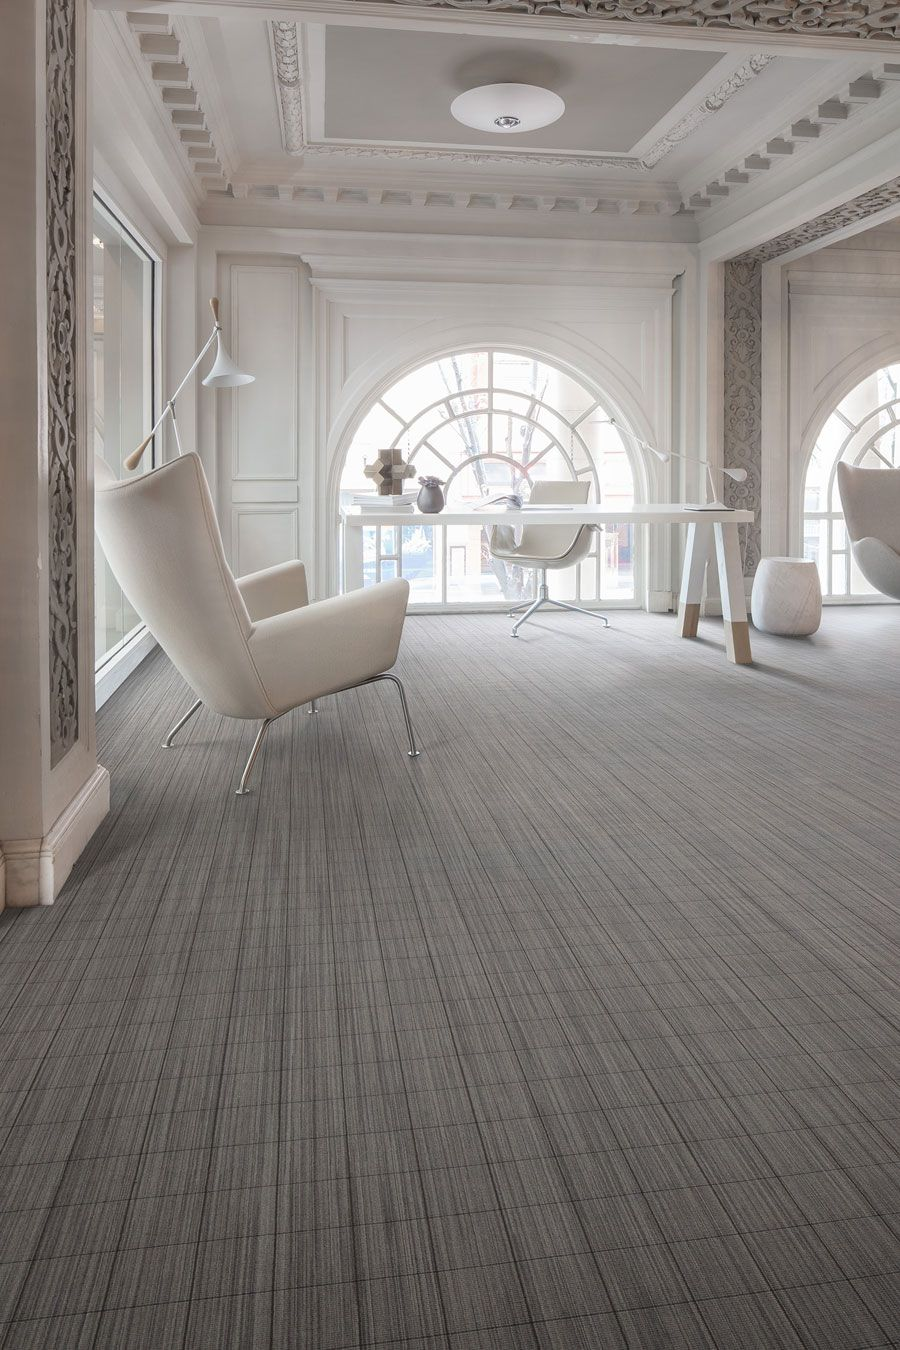 Global Attraction, Karastan Commercial Woven Carpet